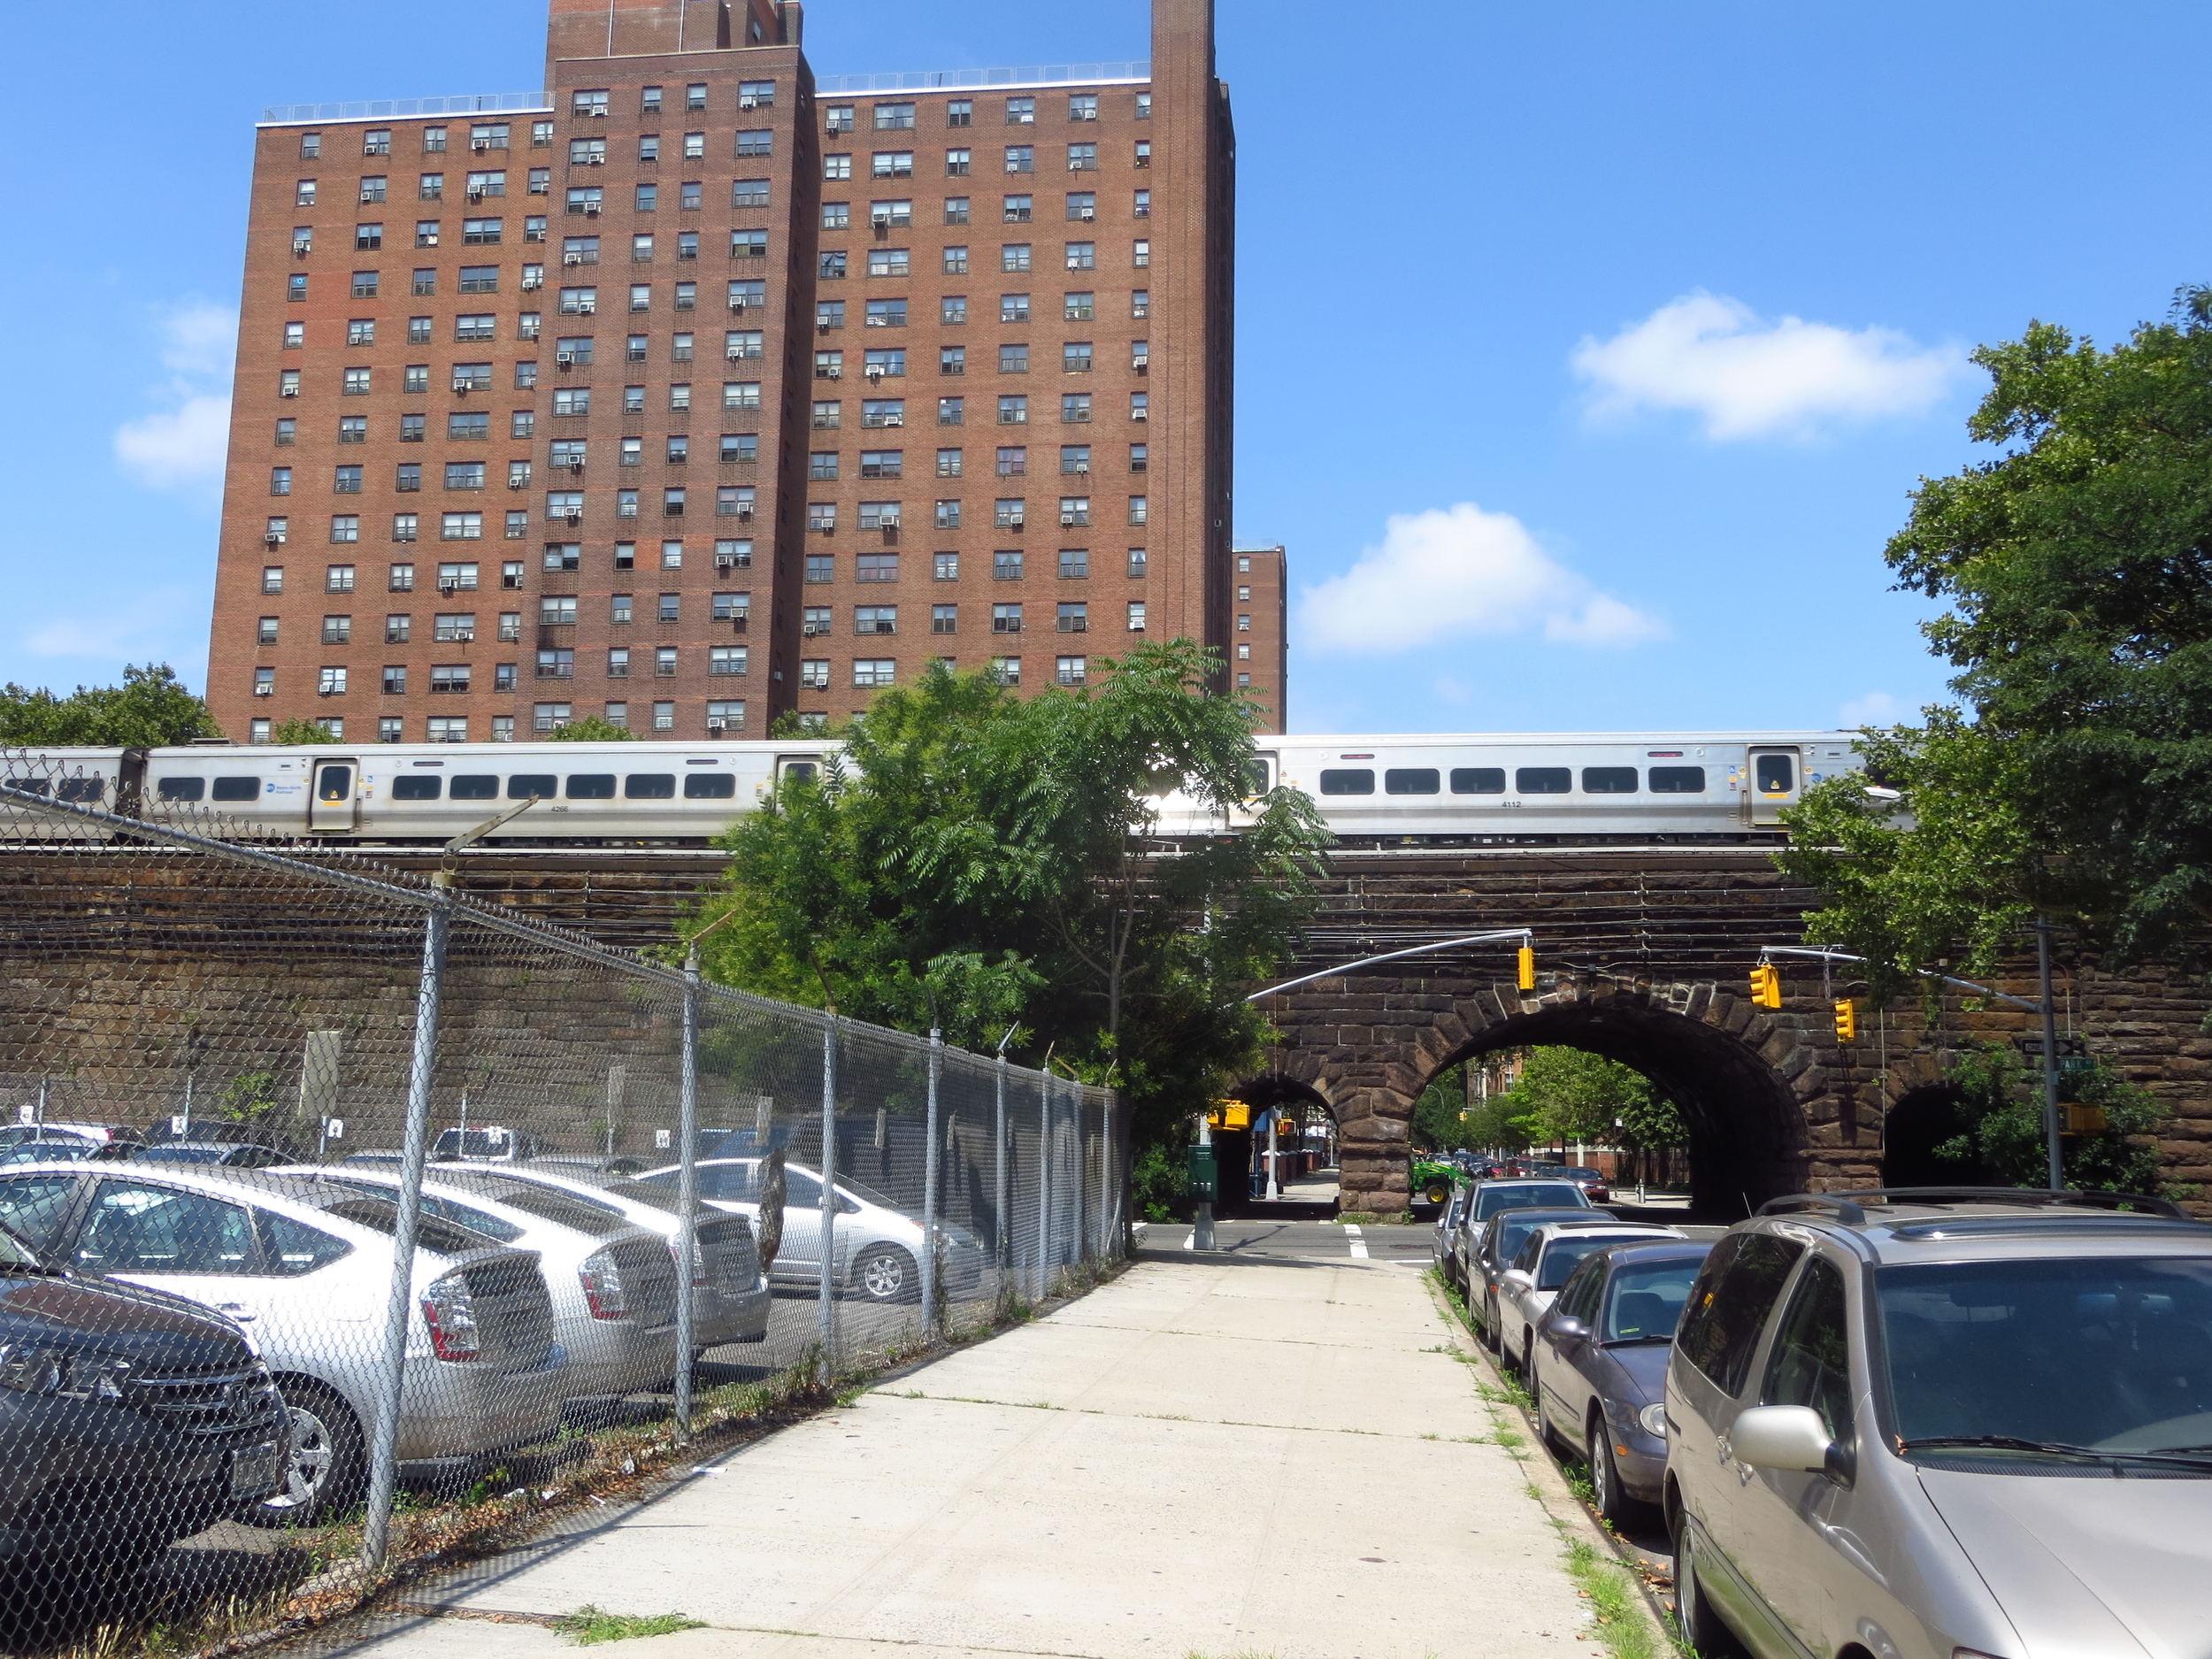 Metro North viaduct